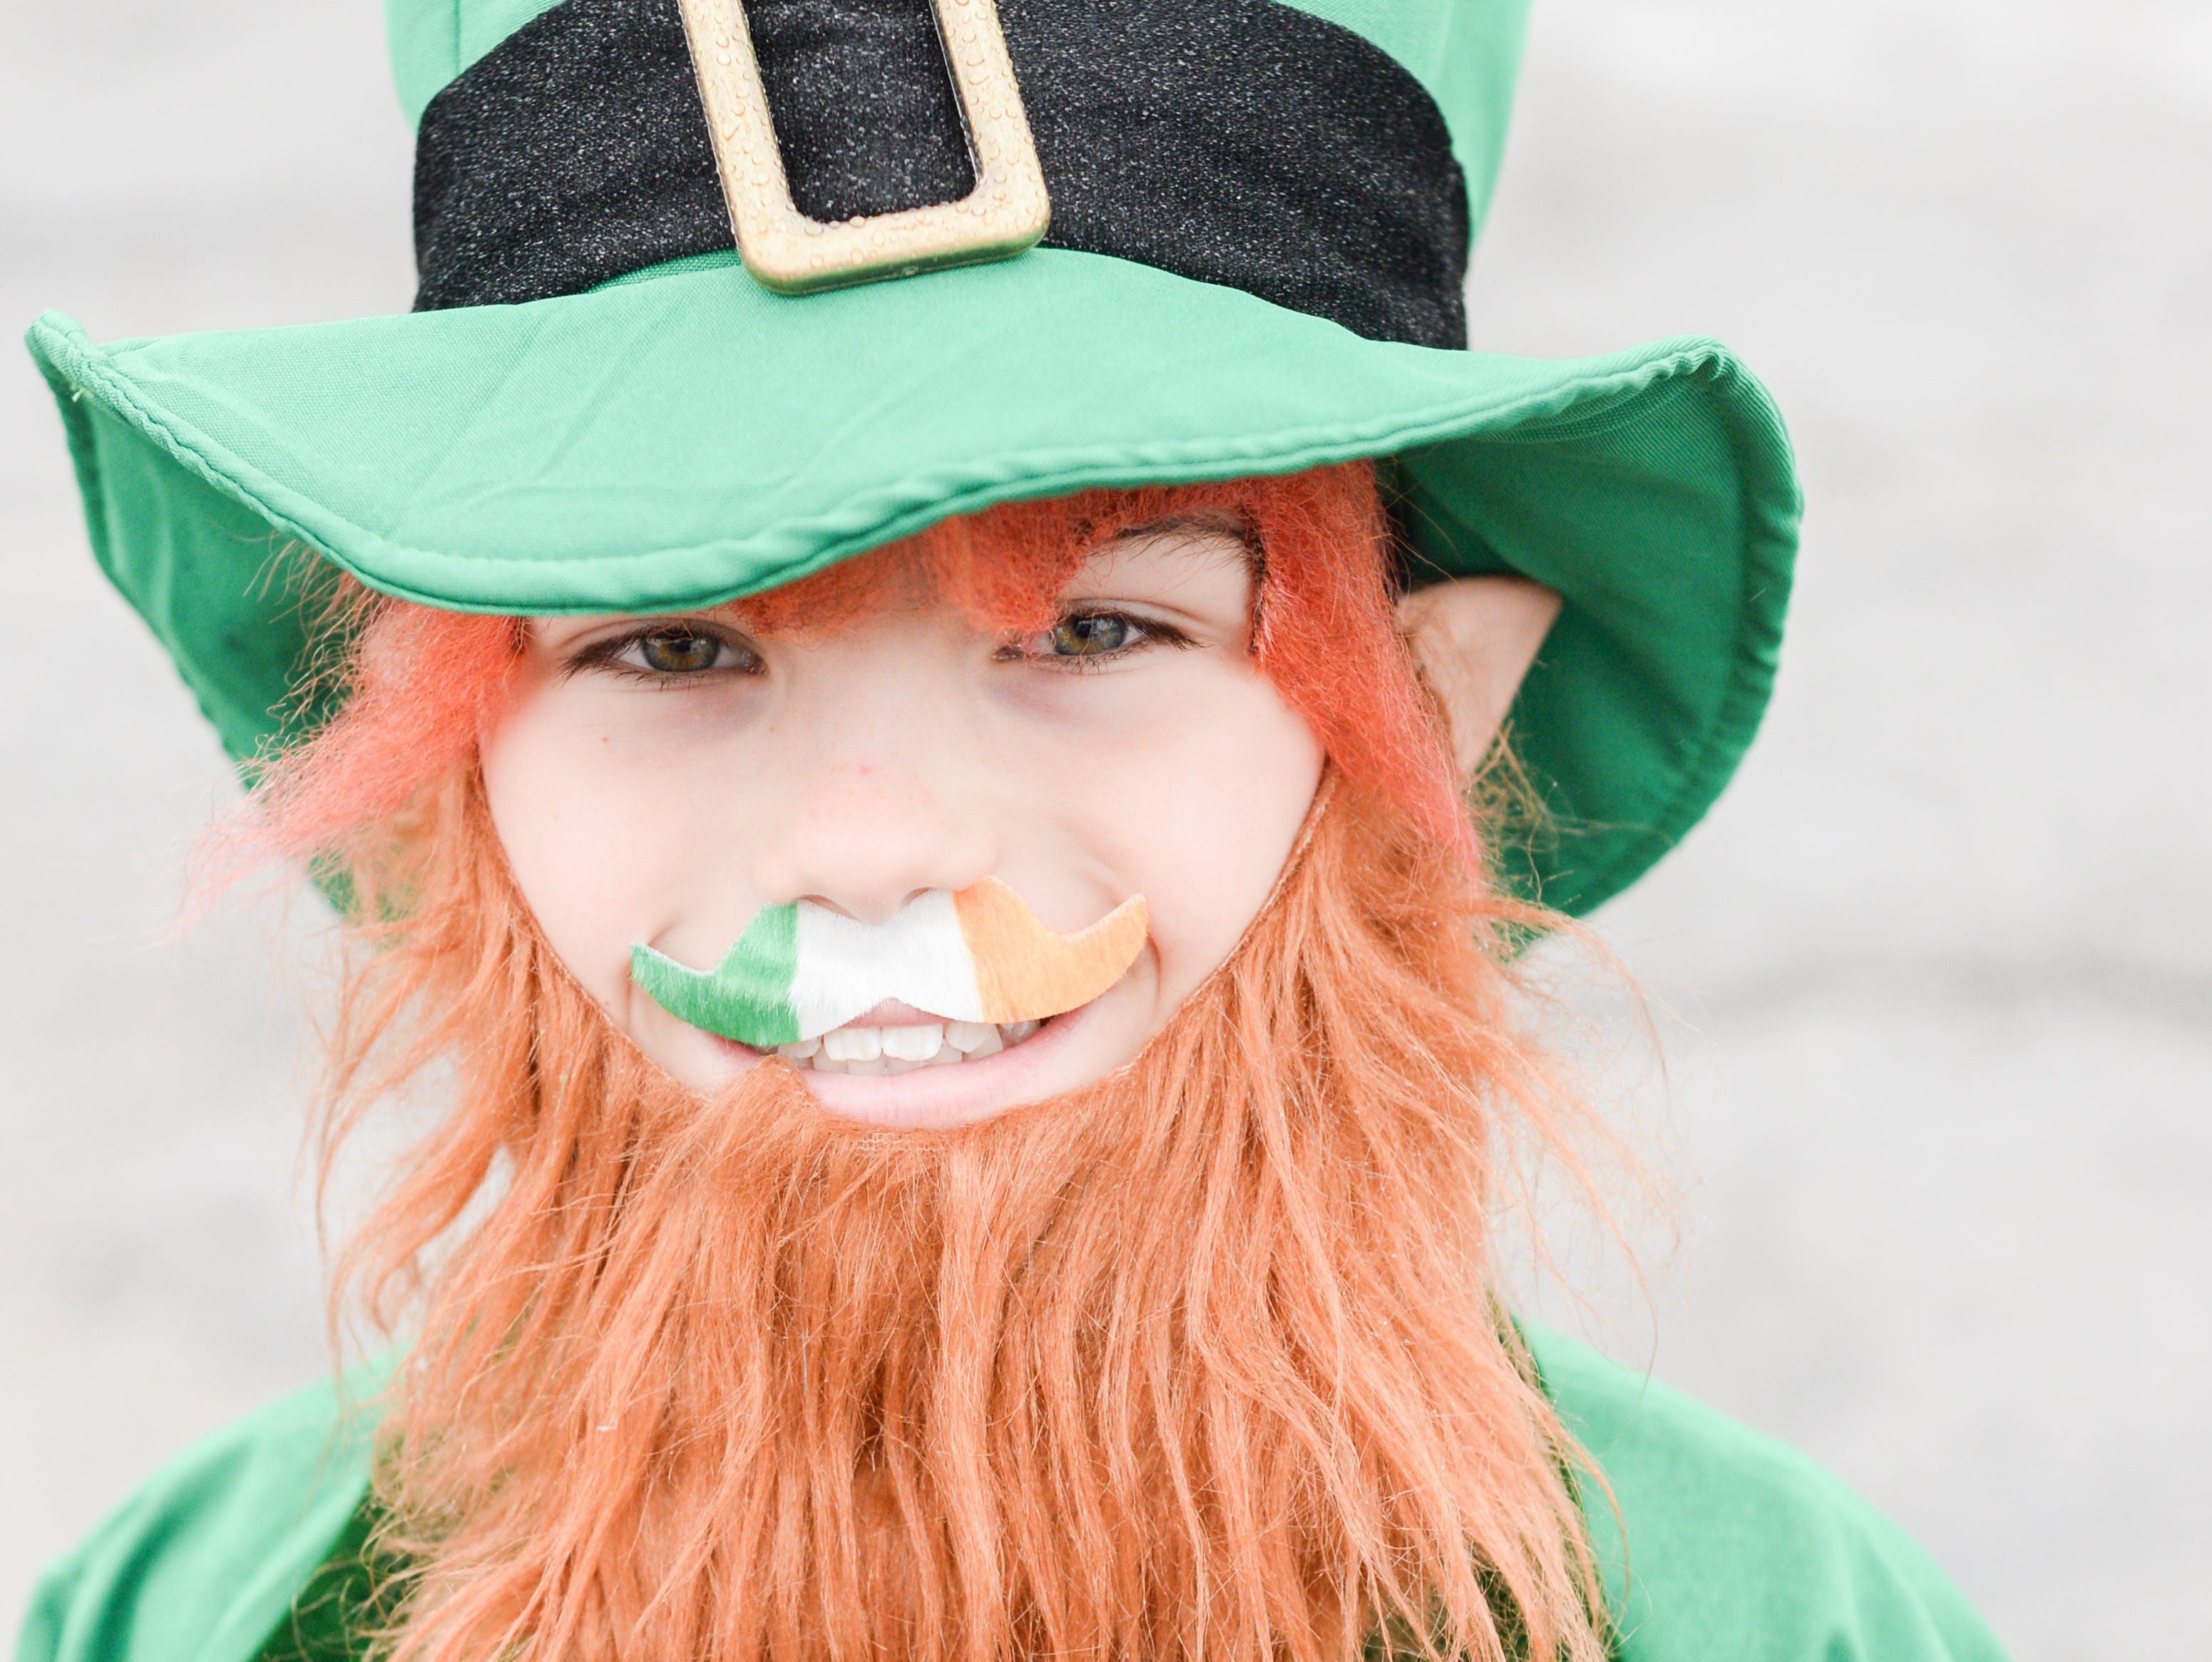 Liam Lassiter goes all out for the Gallatin Shamrock Run on Saturday, March 9. Proceeds from the event are used to fund grants through the Gallatin Chamber Foundation for innovative educational programs for students K-12 in the city of Gallatin.